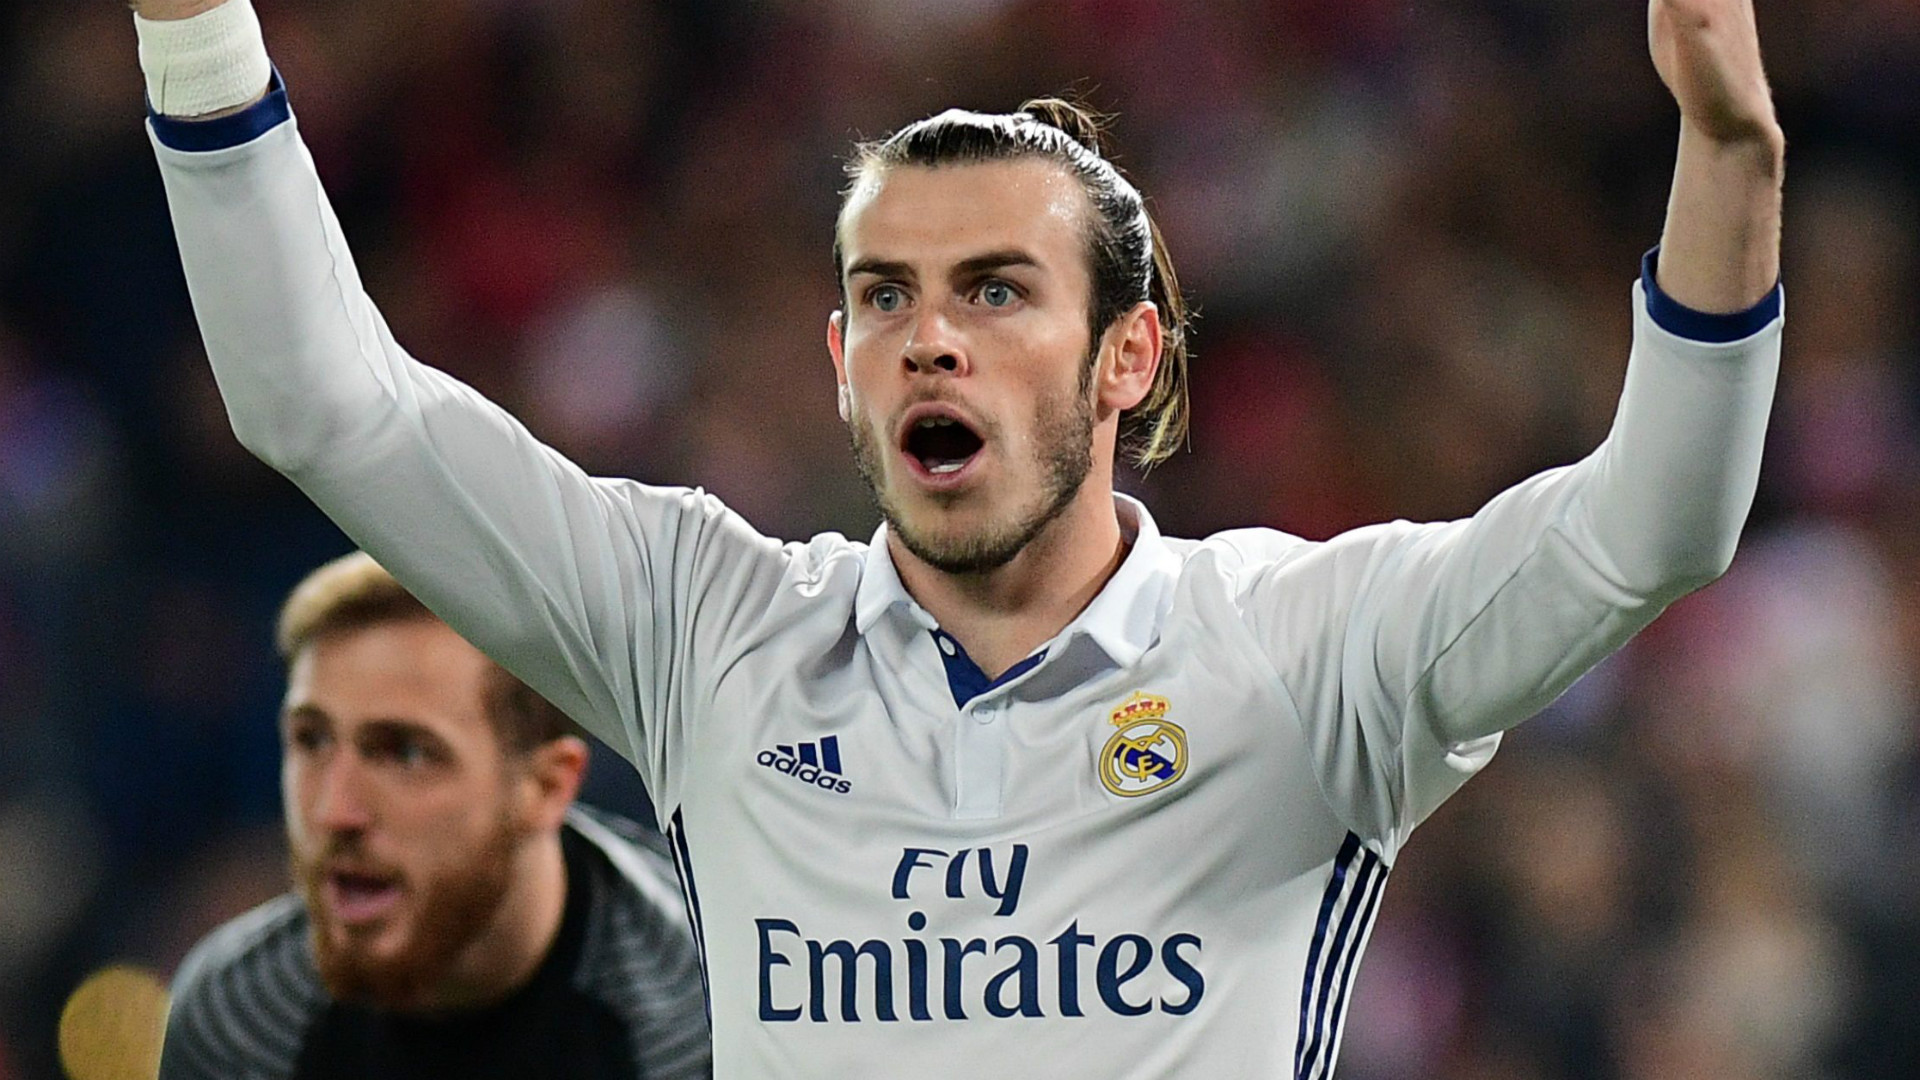 UEFA Team of the Year Gareth Bale